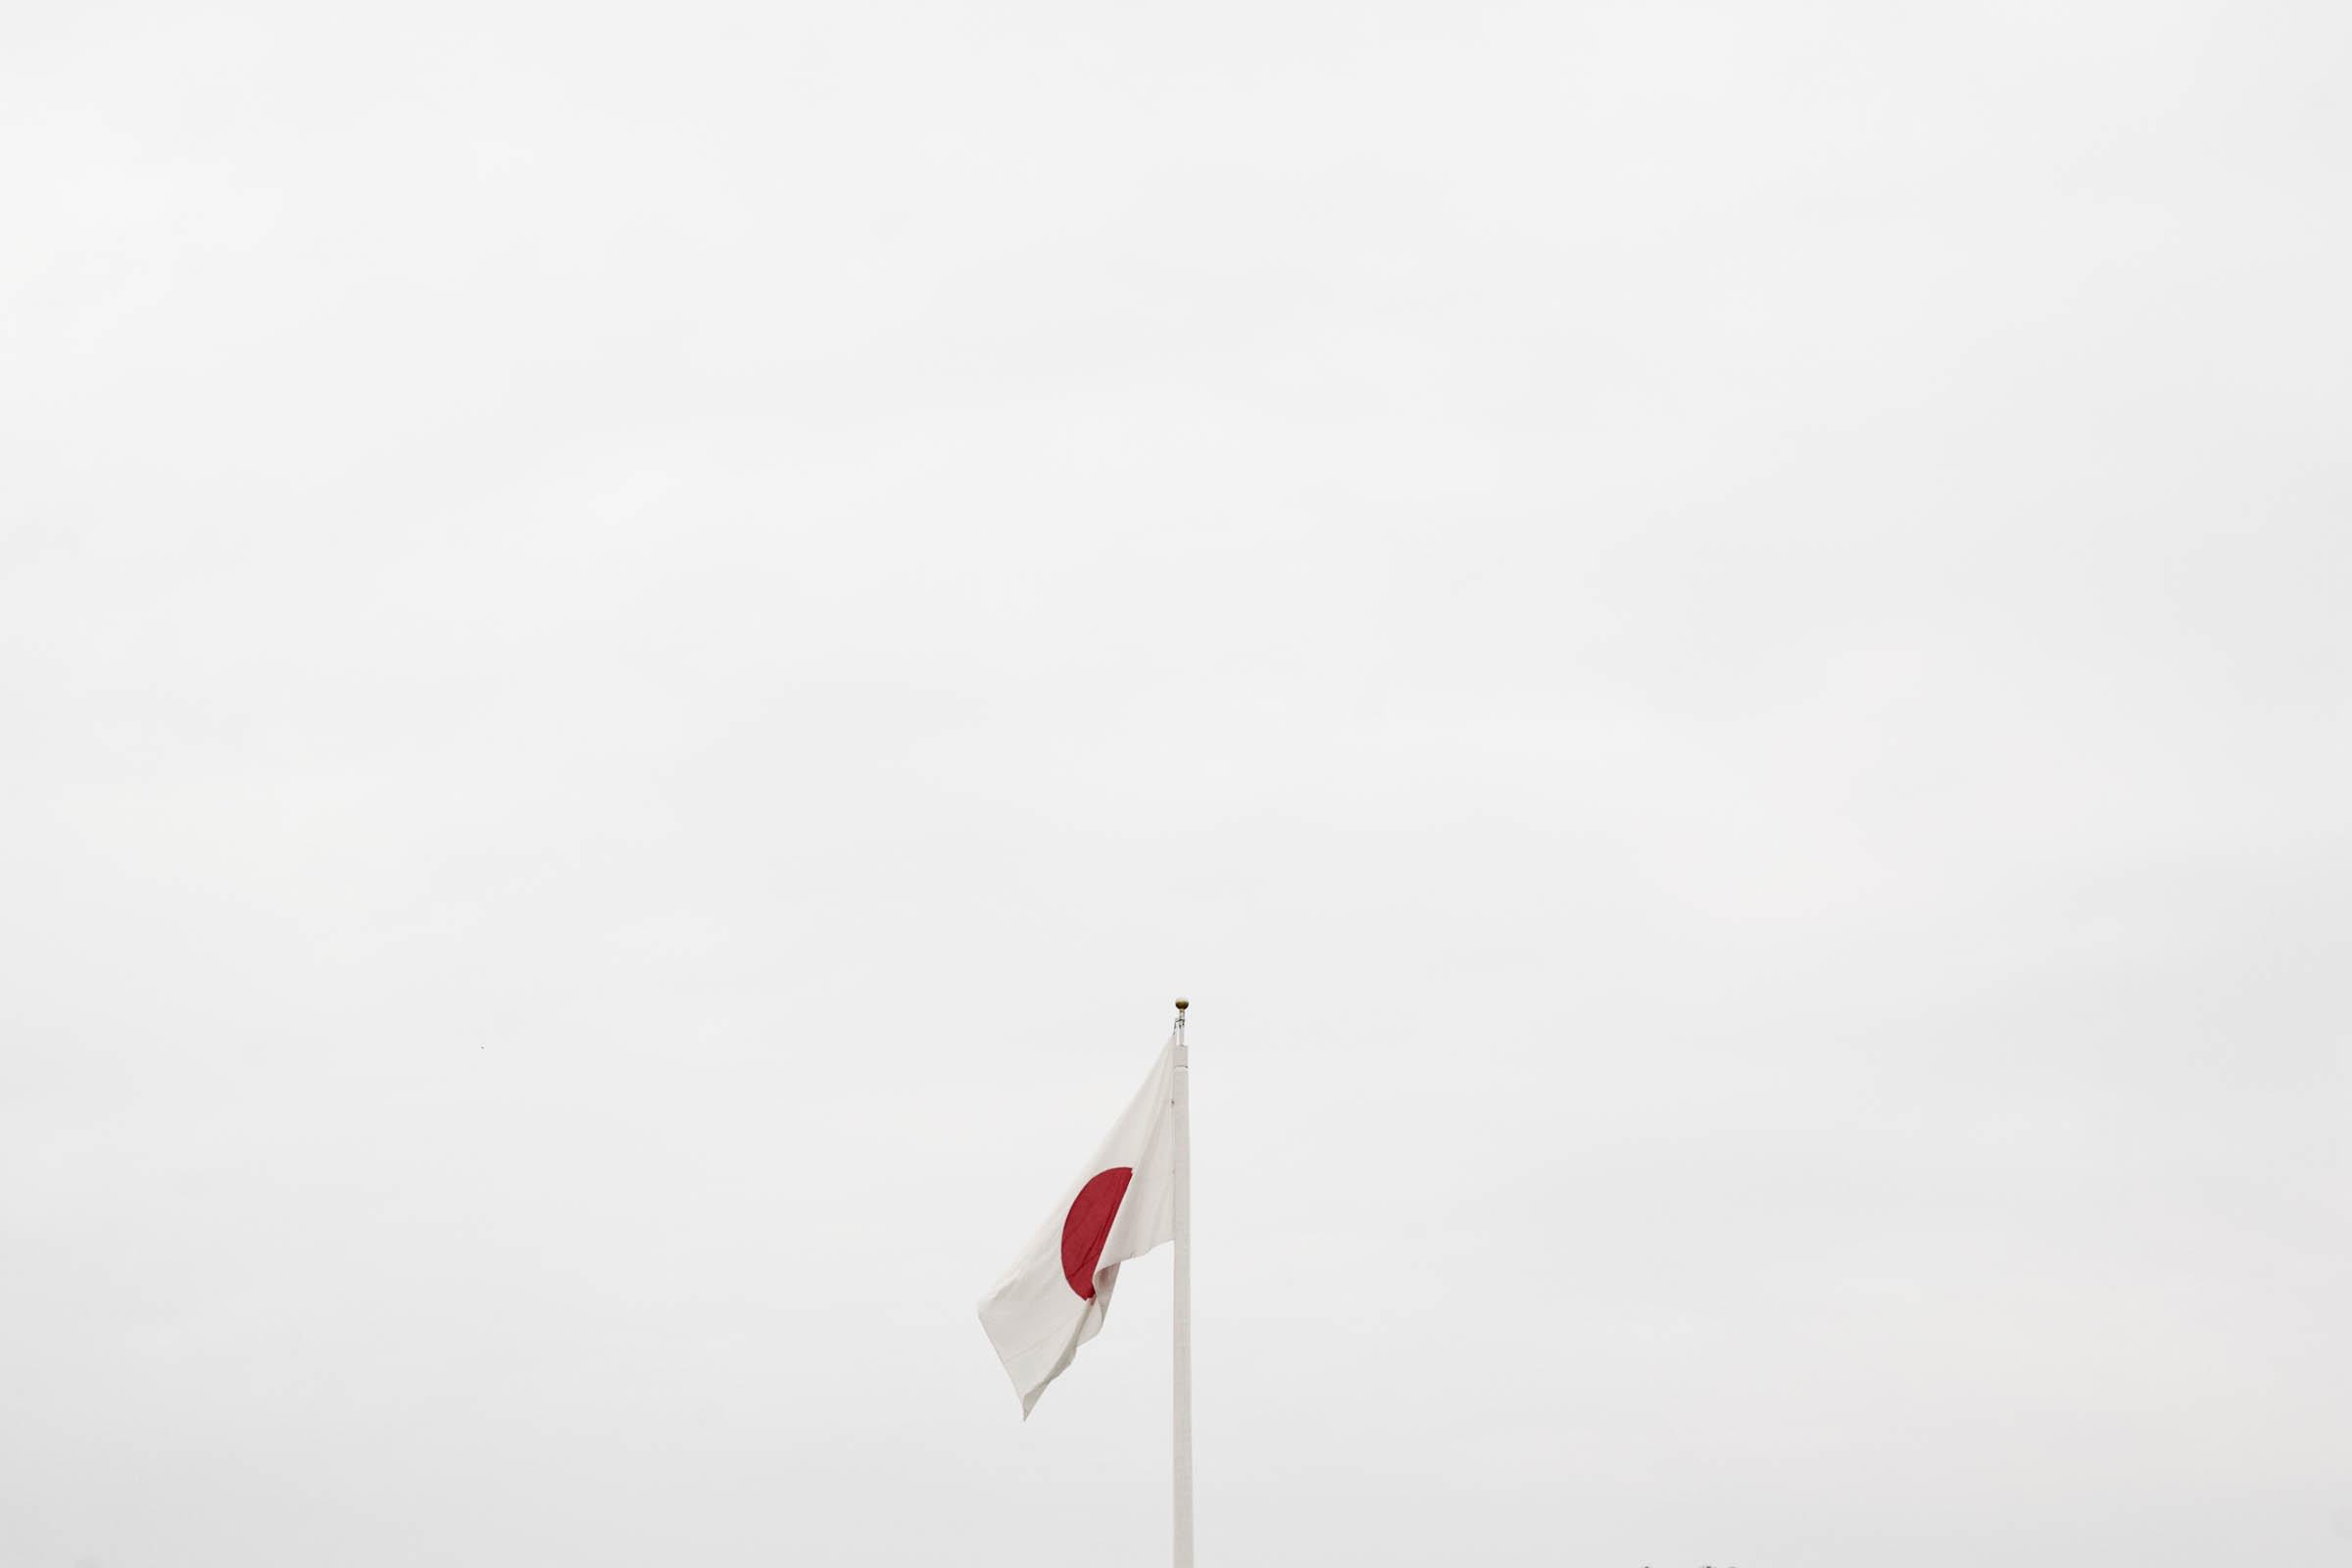 Chacon Images_Japan_Web-95.jpg